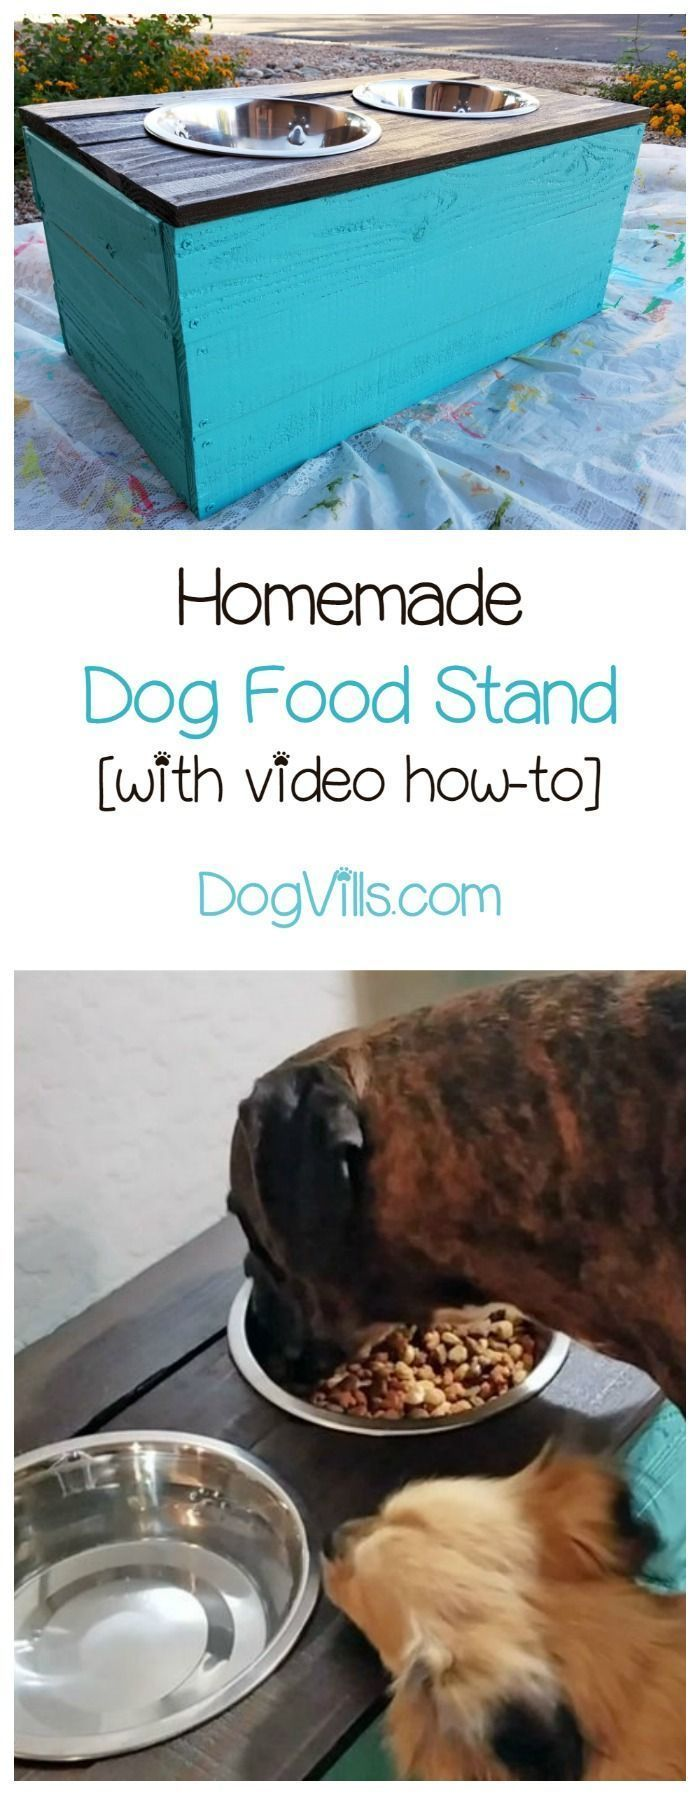 Keep your pets' food off the floor with this DIY homemade dog food stand. It's one of our favorite inexpensive dog accessories to make! Video tutorial included.